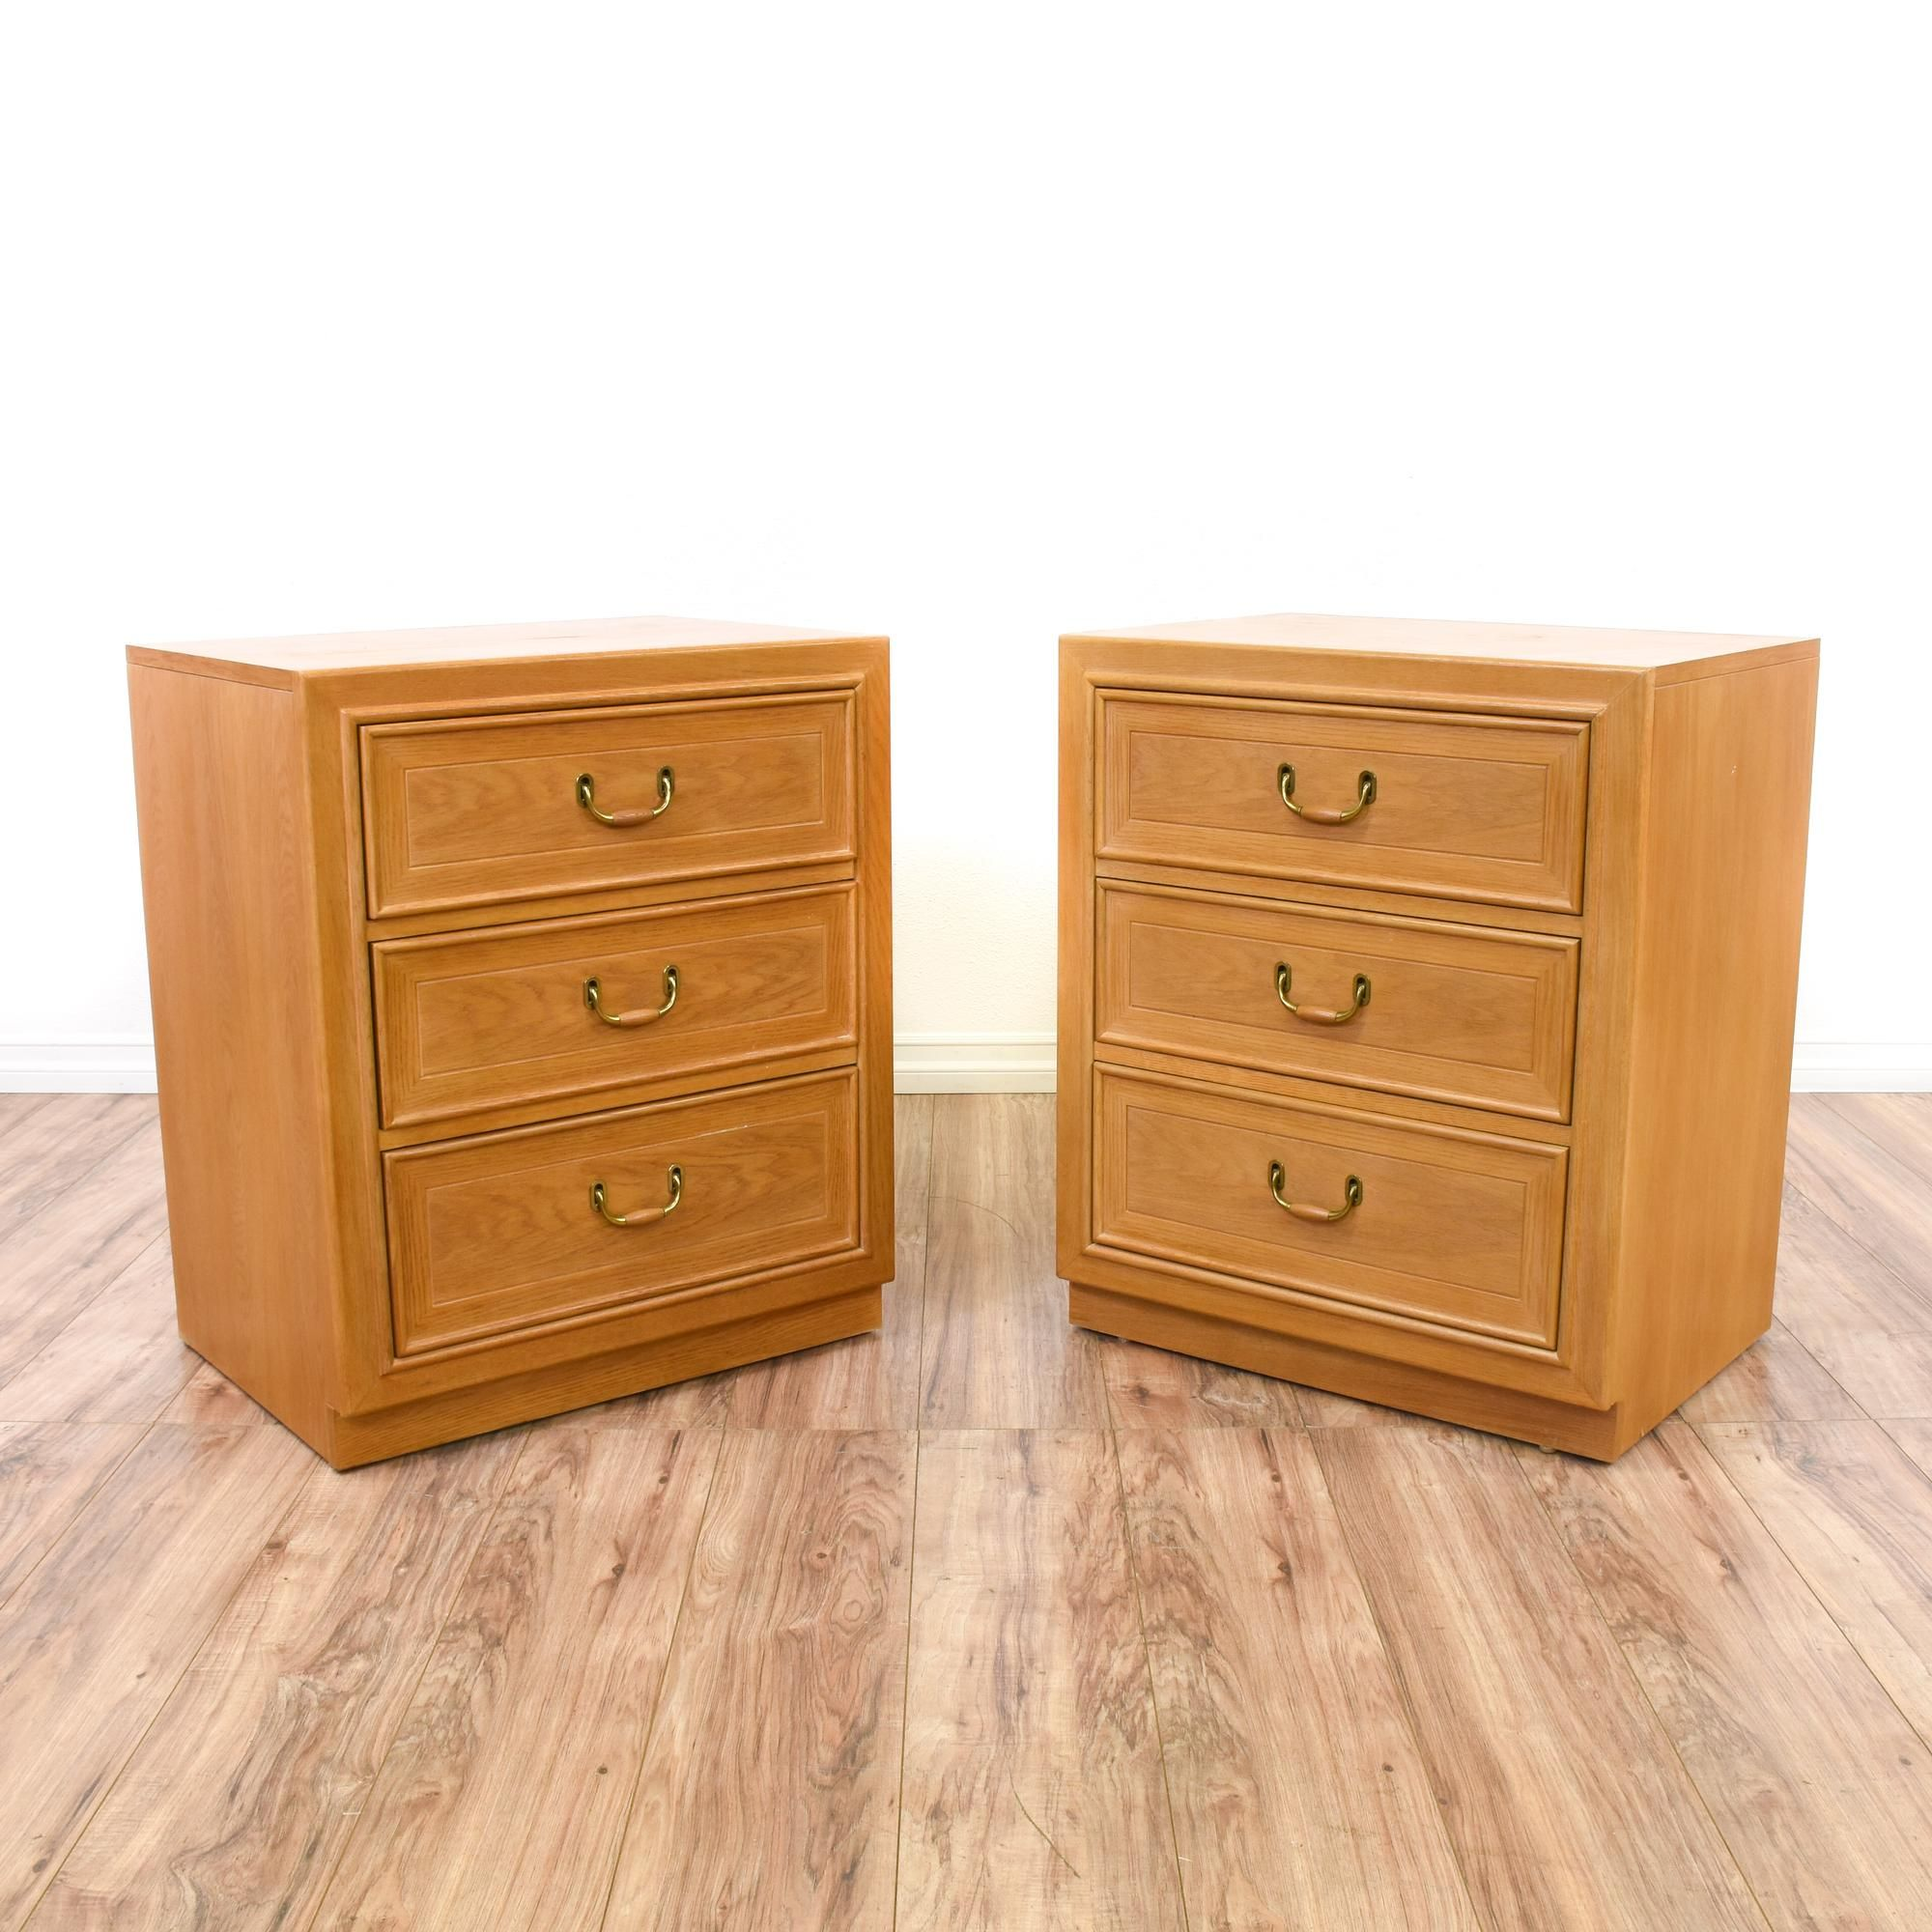 These nightstands are featured in a solid